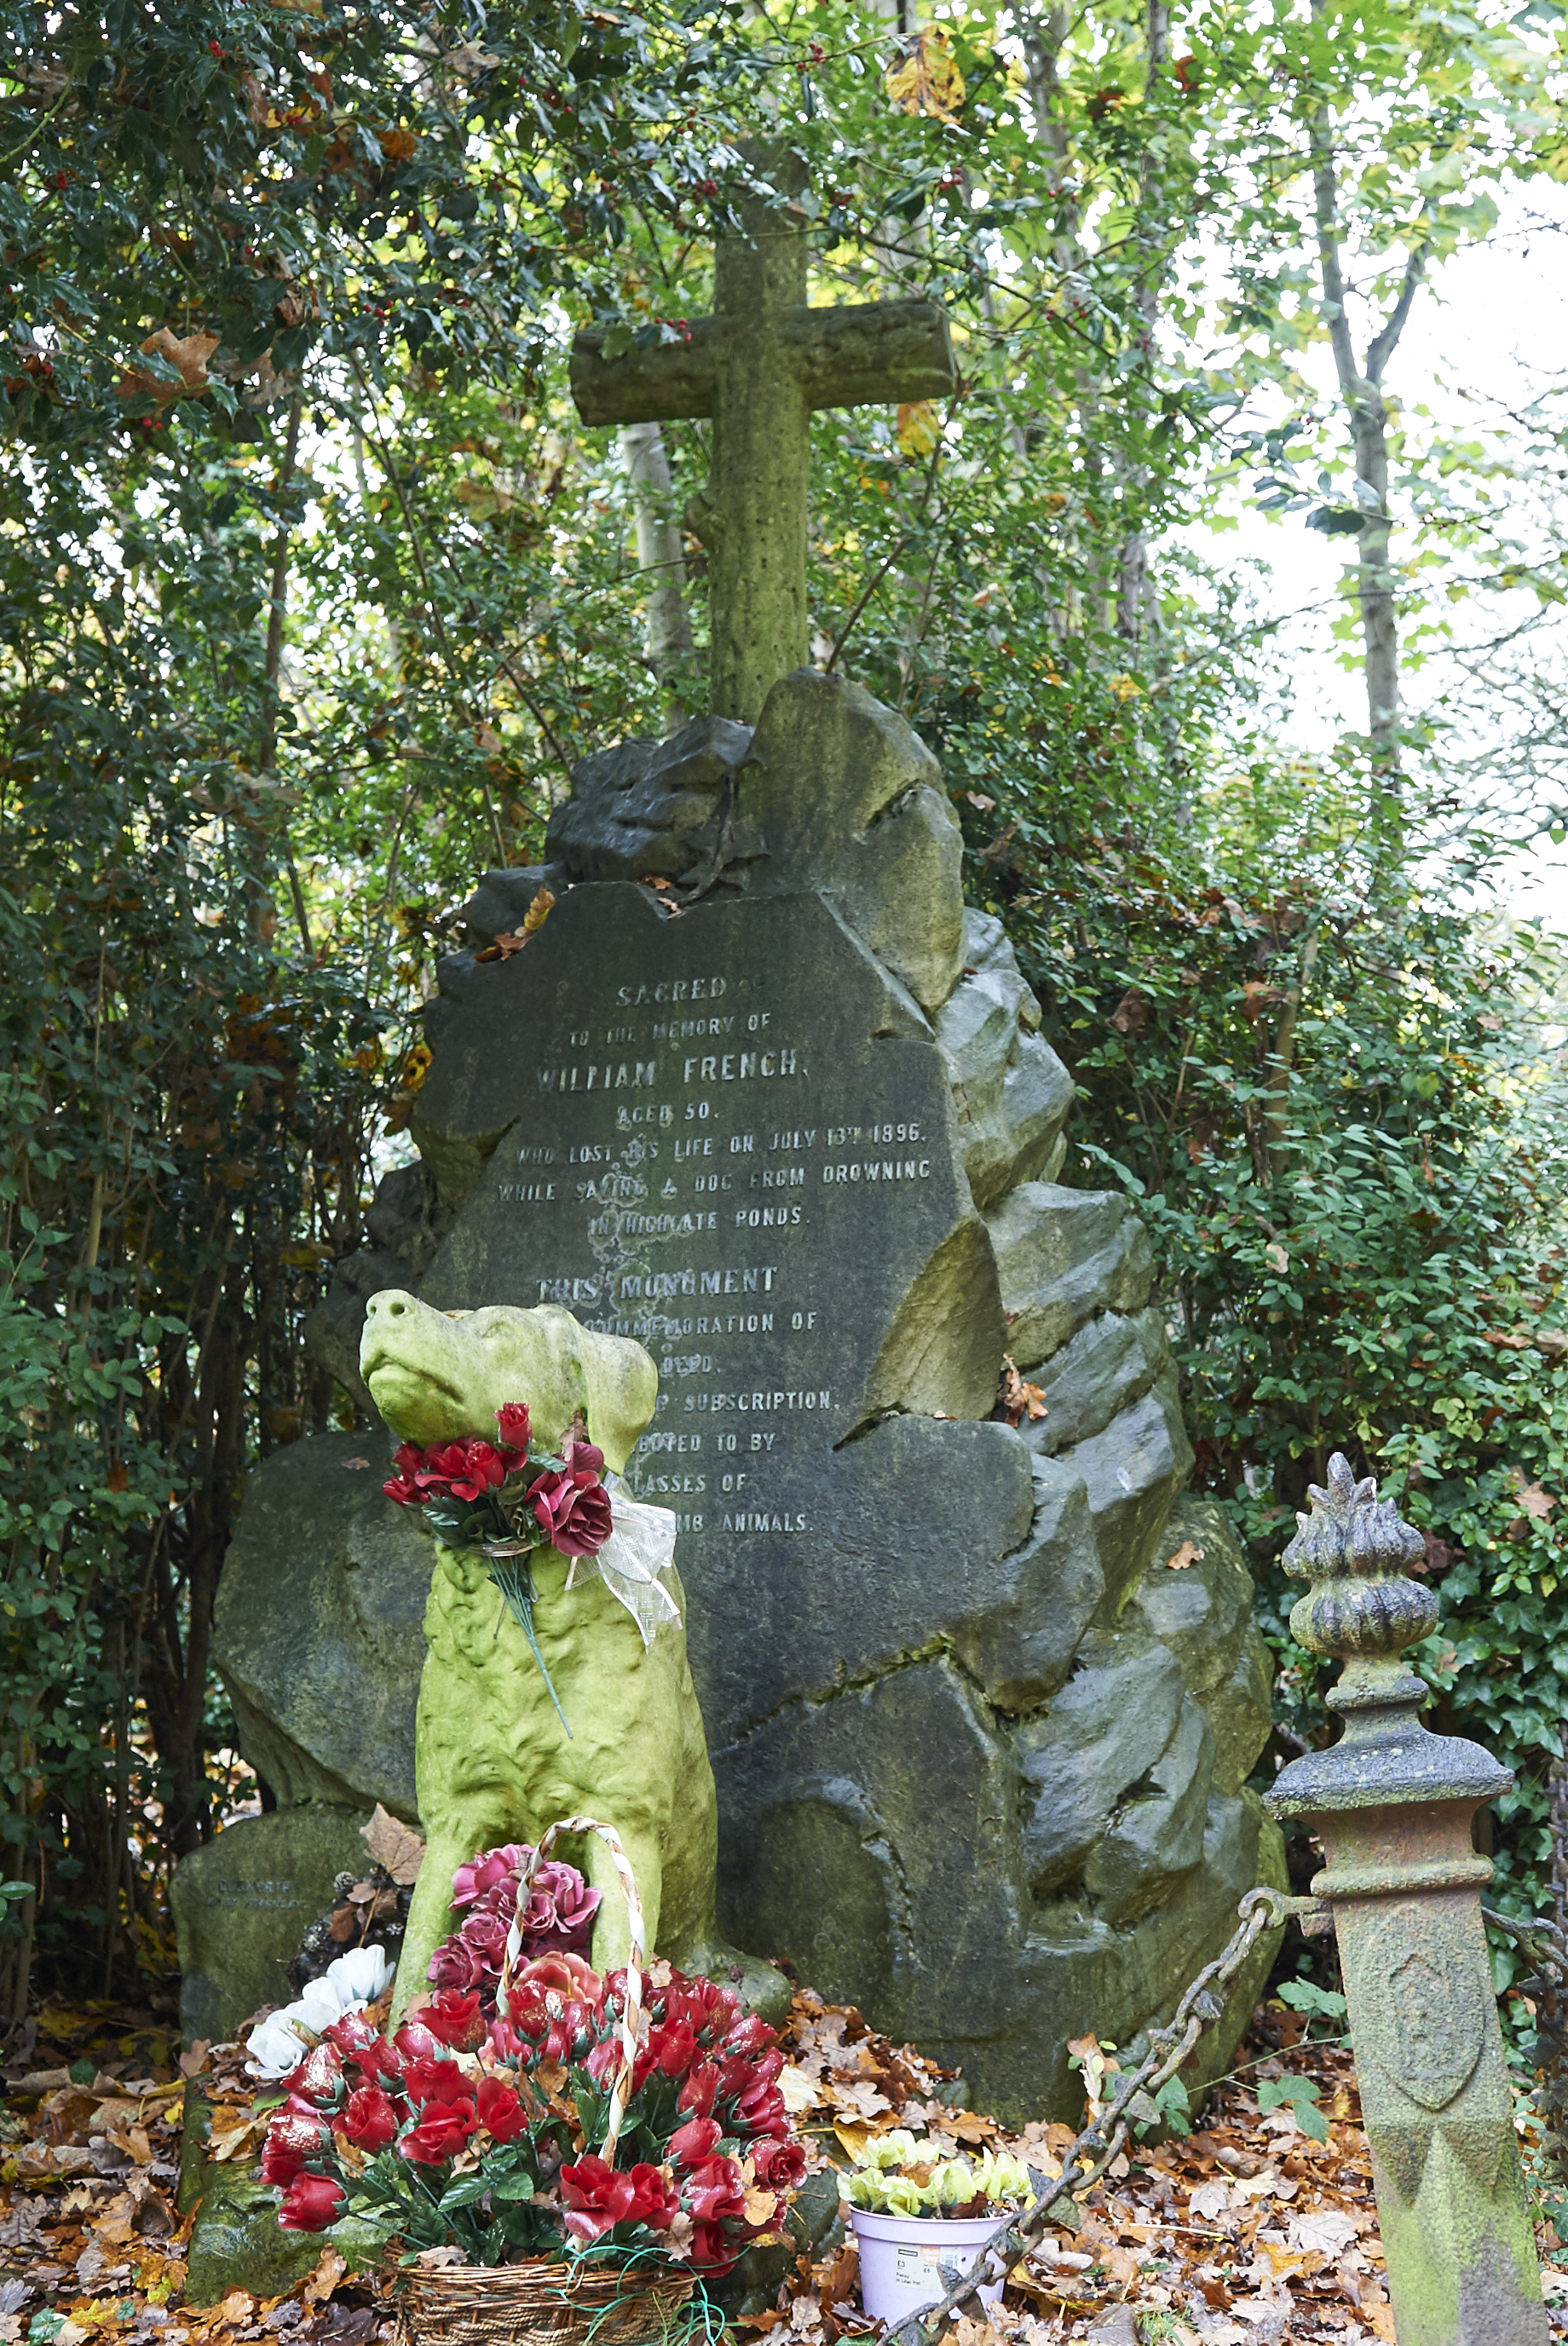 This is the resting place of a guy who jumped into Highgate Ponds to save a Dog in 1896, and lost his own life.